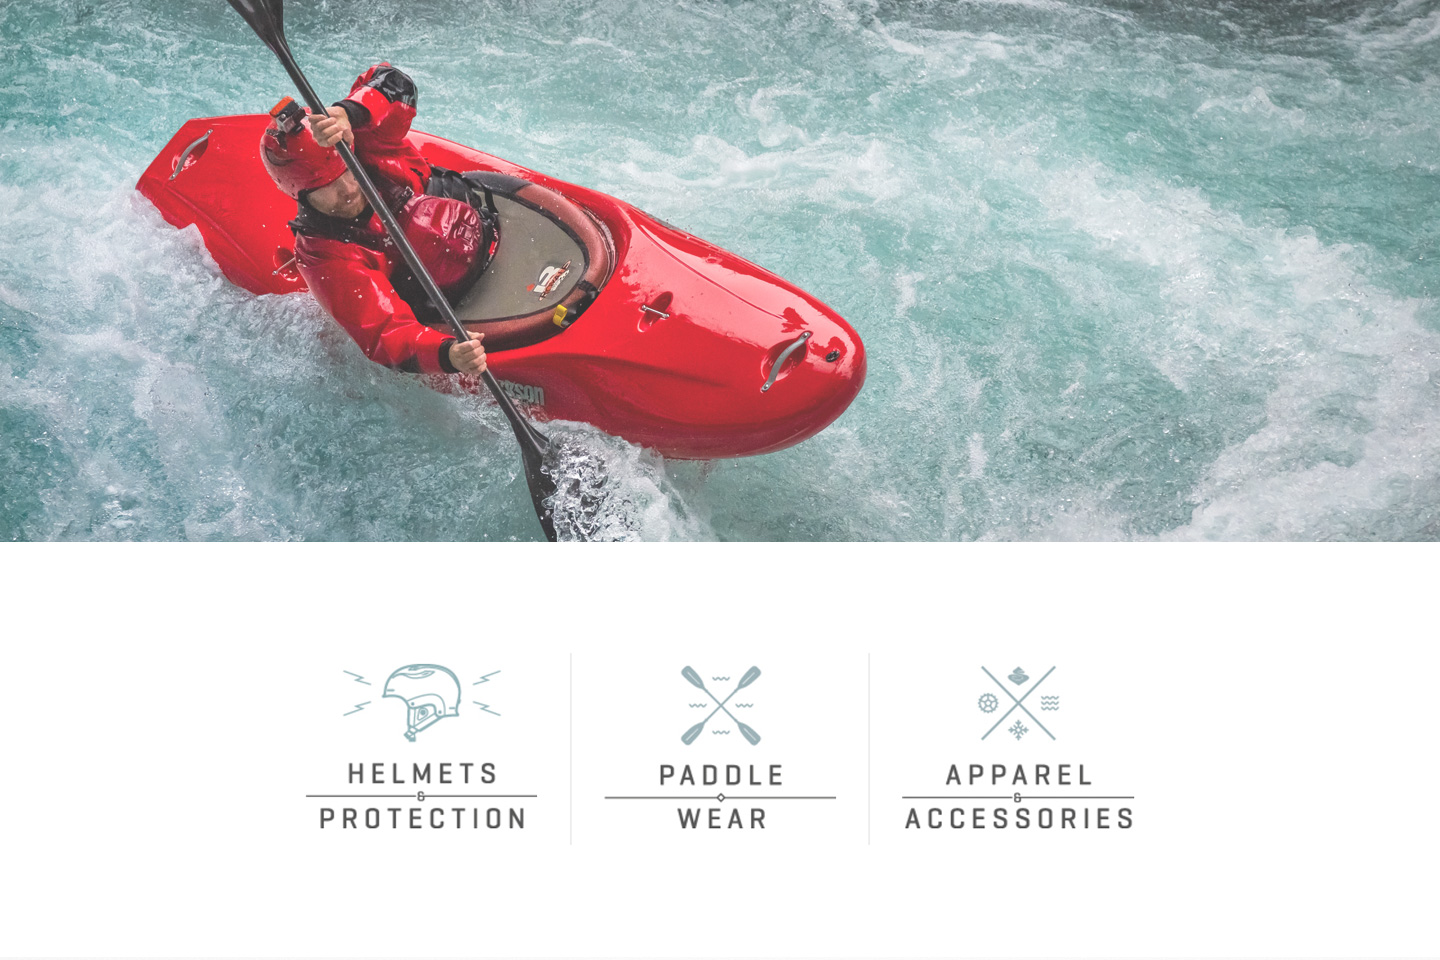 Sweet Protection whitewater kayaking photo and category illustrations